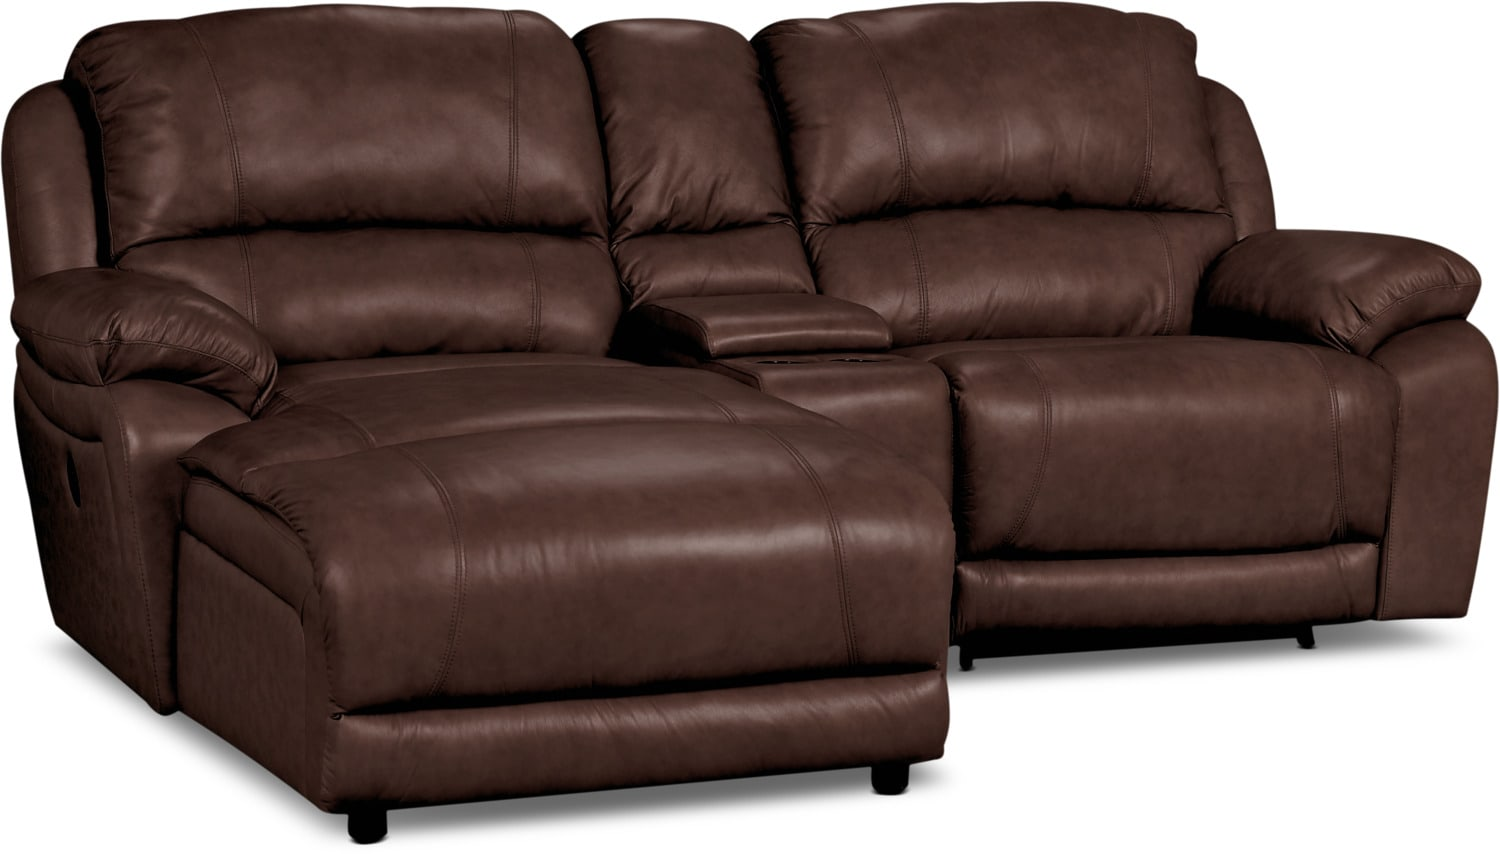 Marco genuine leather 3 piece sectional with chaise power for 3 piece leather sectional sofa with chaise